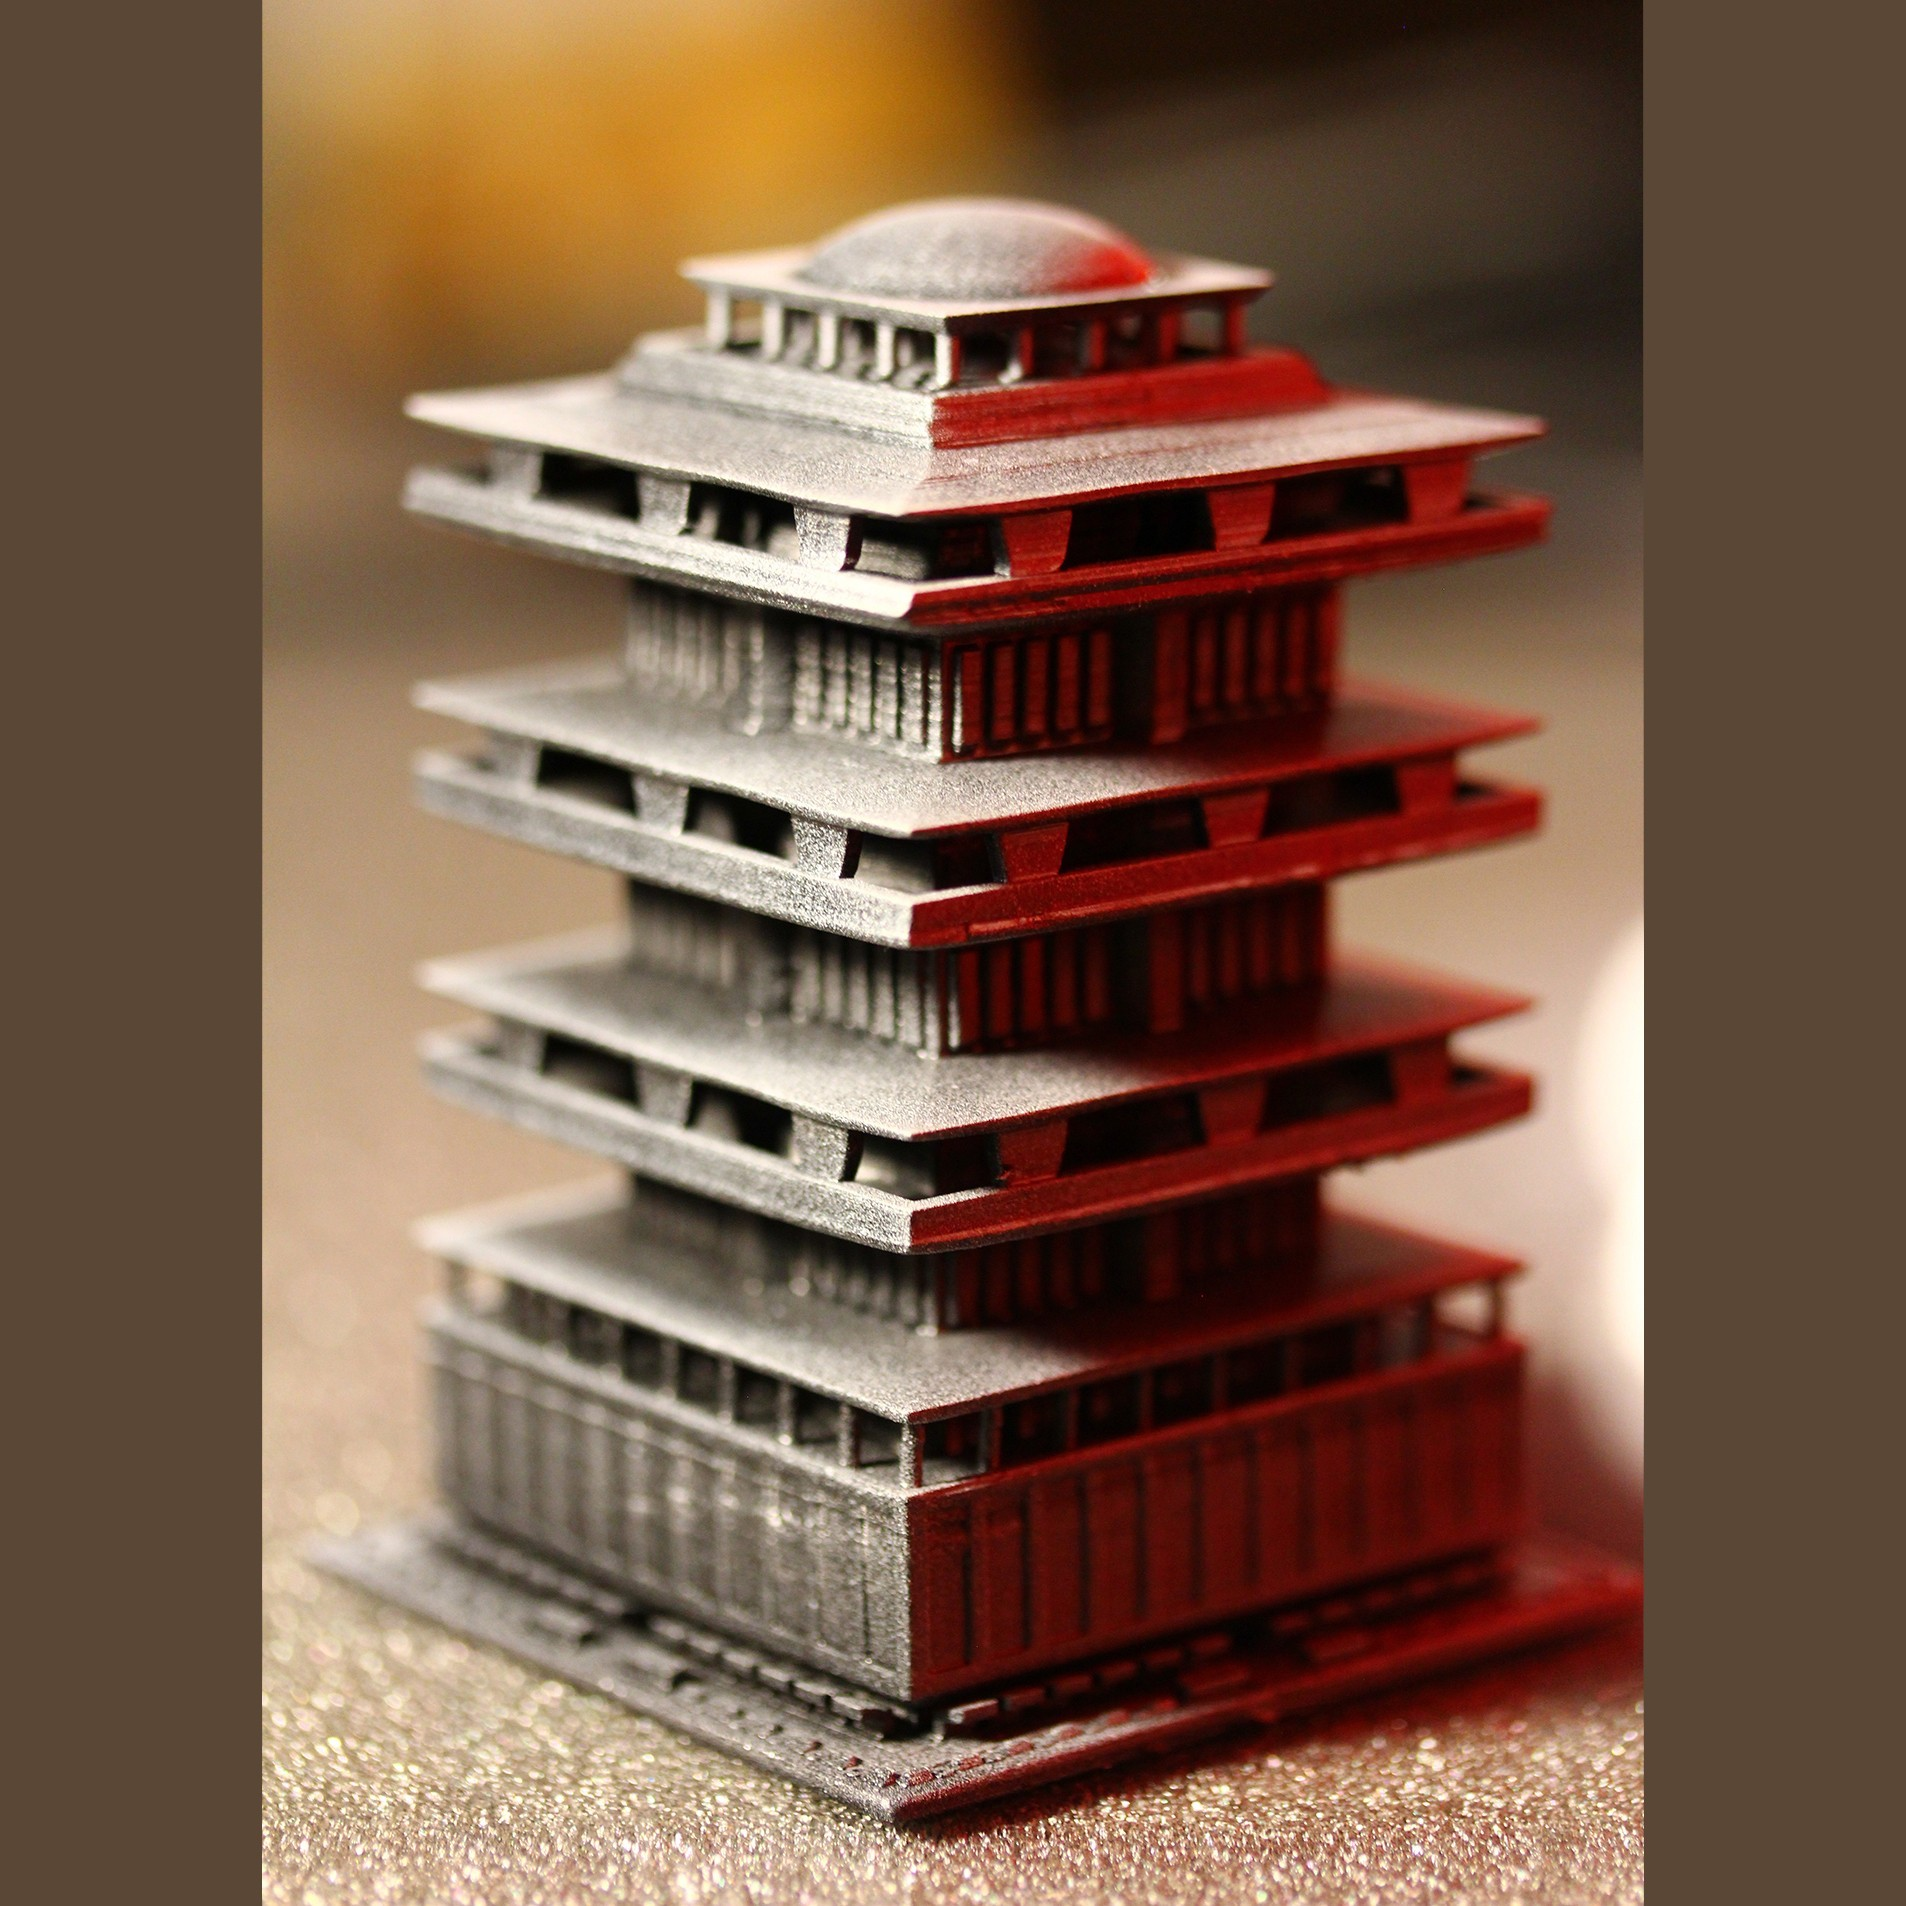 Downtown-highrise-4.JPG Download STL file Downtown highrise - Building - For board games like Monsterpocalypse • 3D printable design, Rayjunx